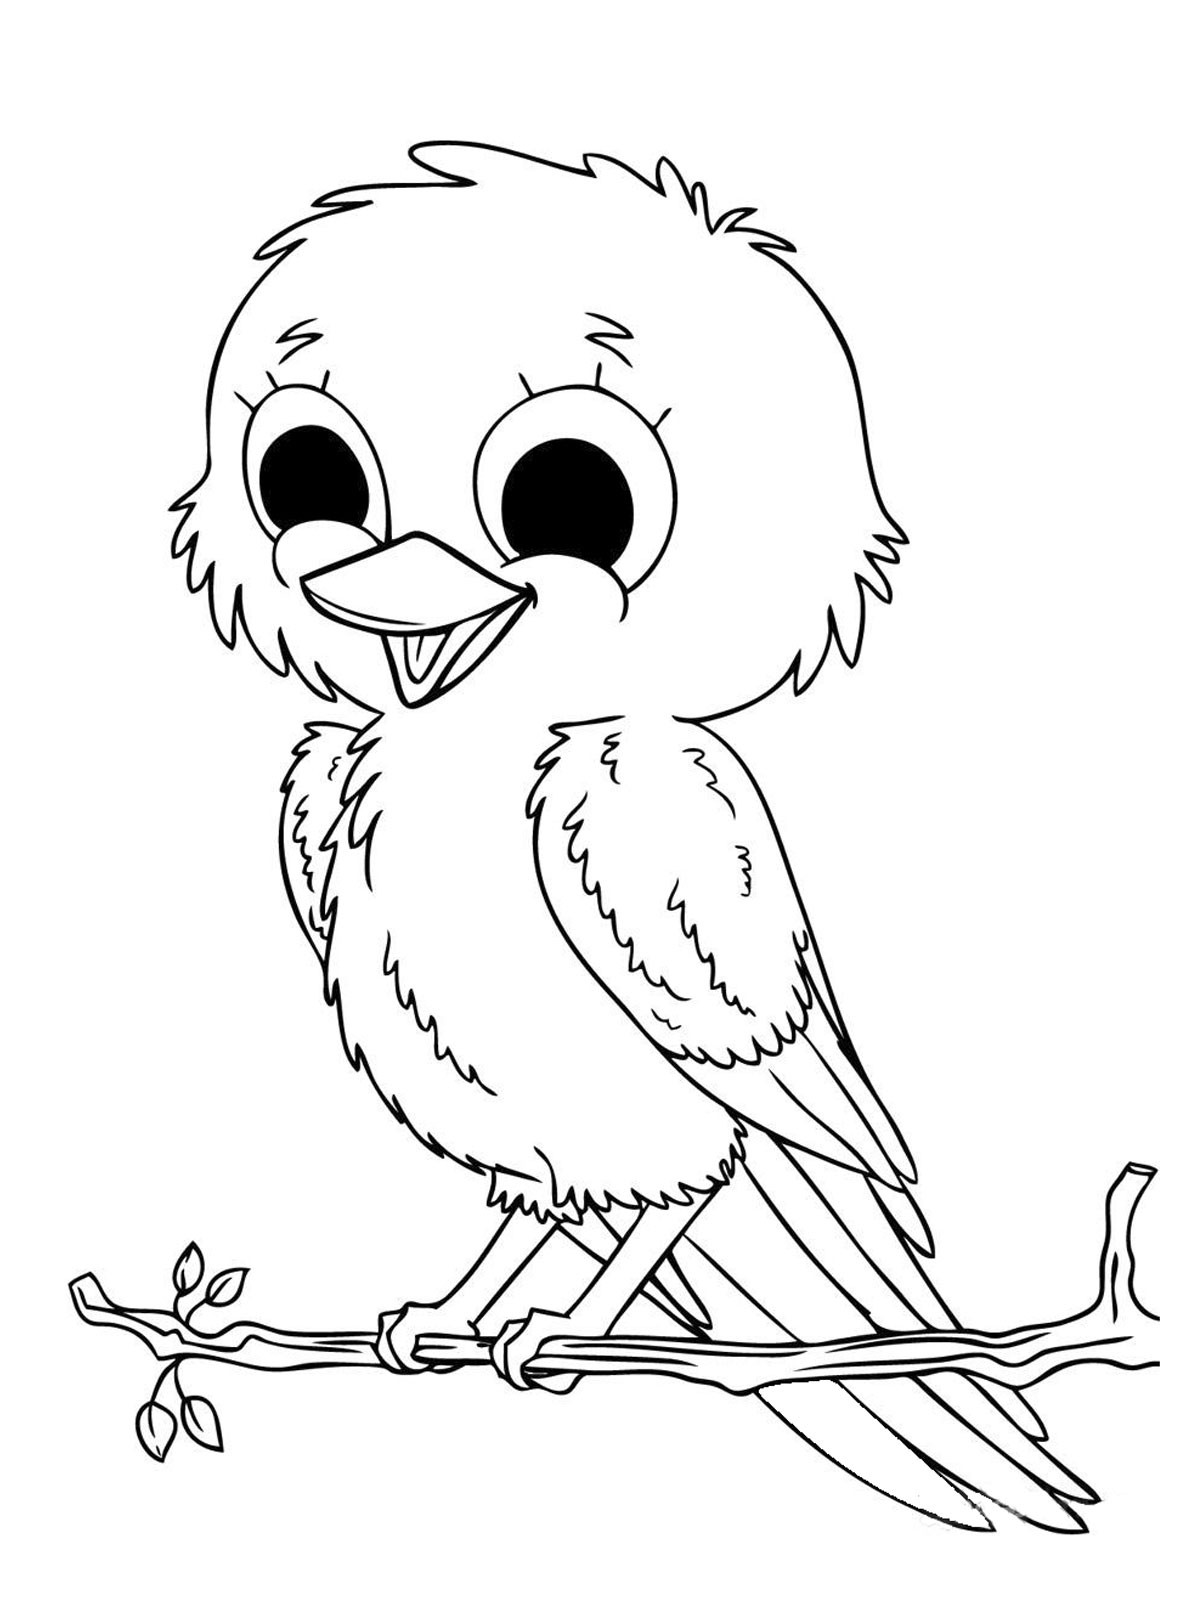 Animal Coloring Sheets For Girls  Baby Animal Coloring Pages